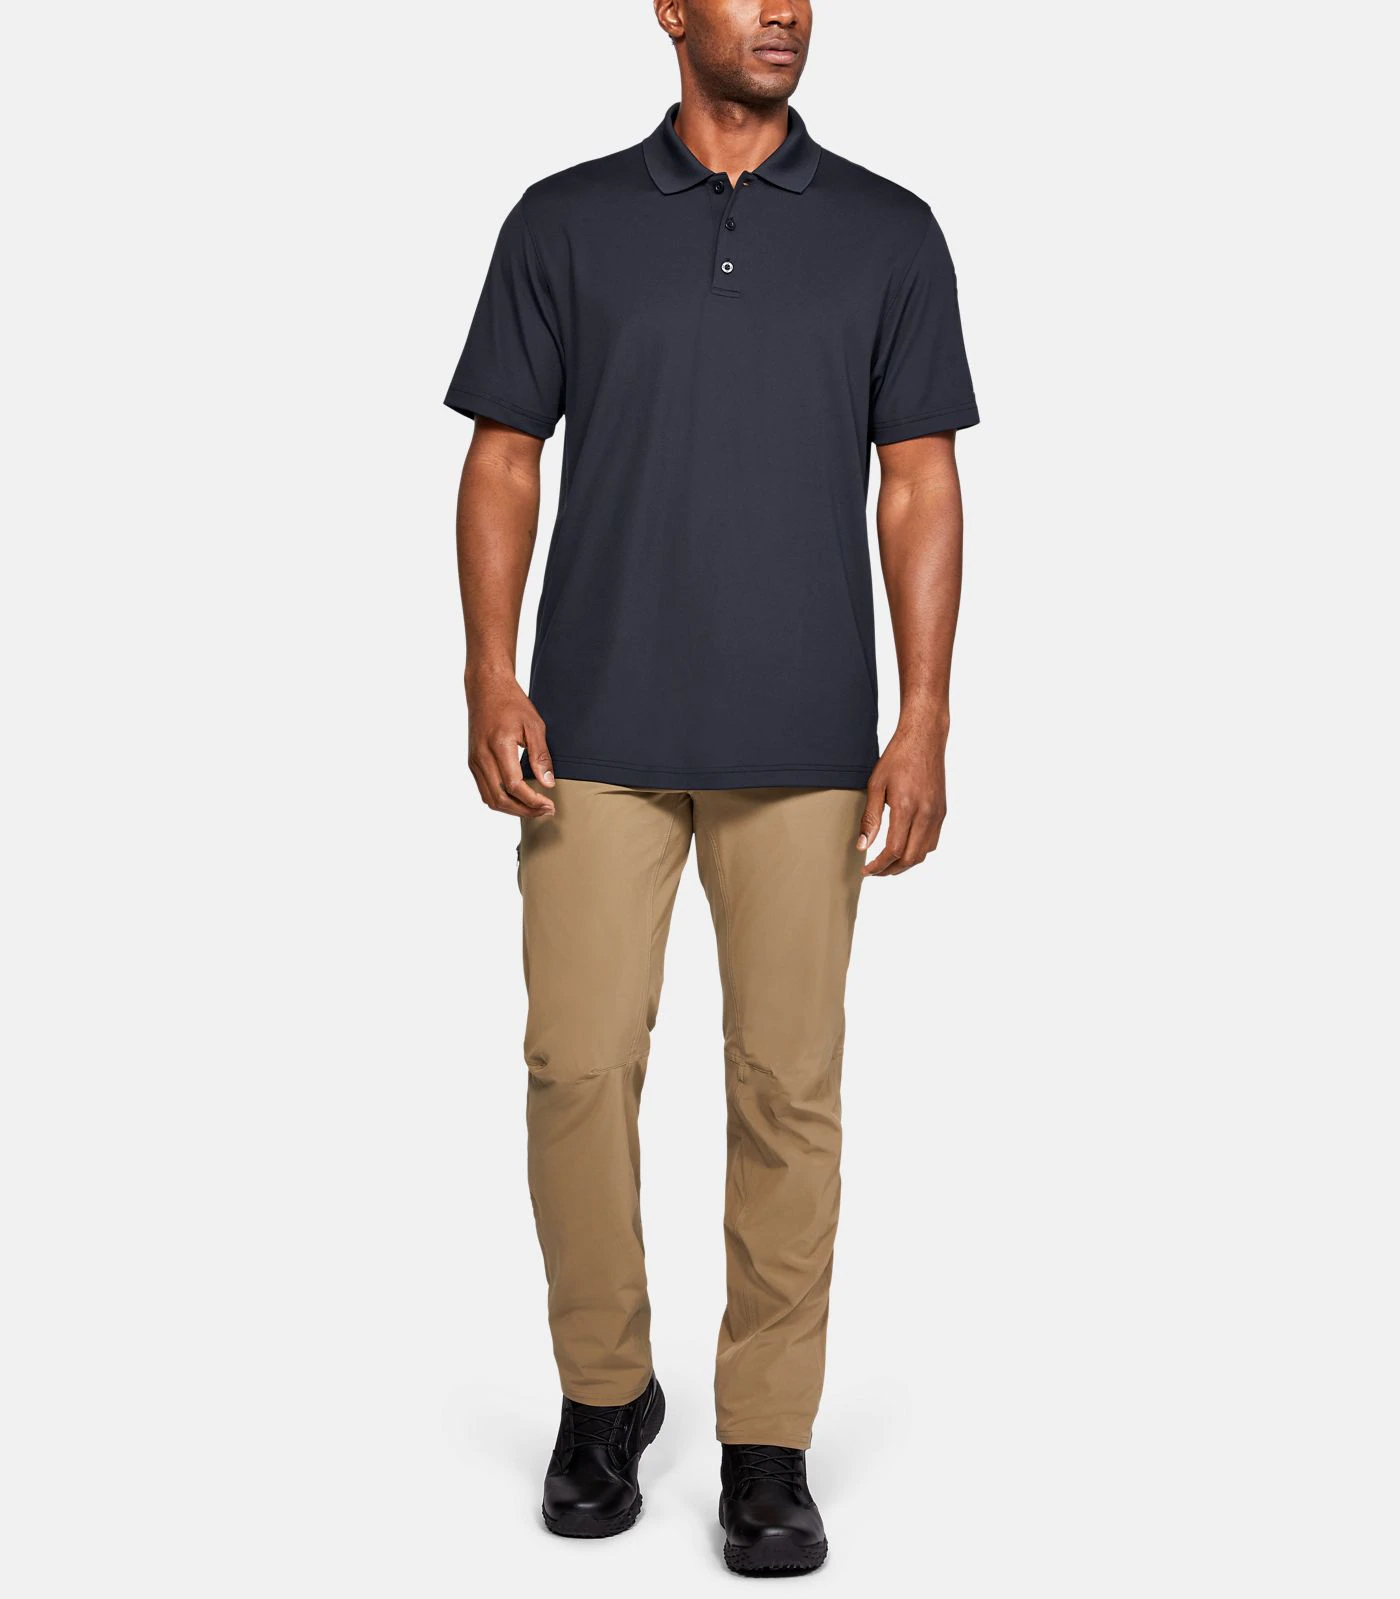 MENS_POLO_TacPerformance-SS_UAR1279759465_05